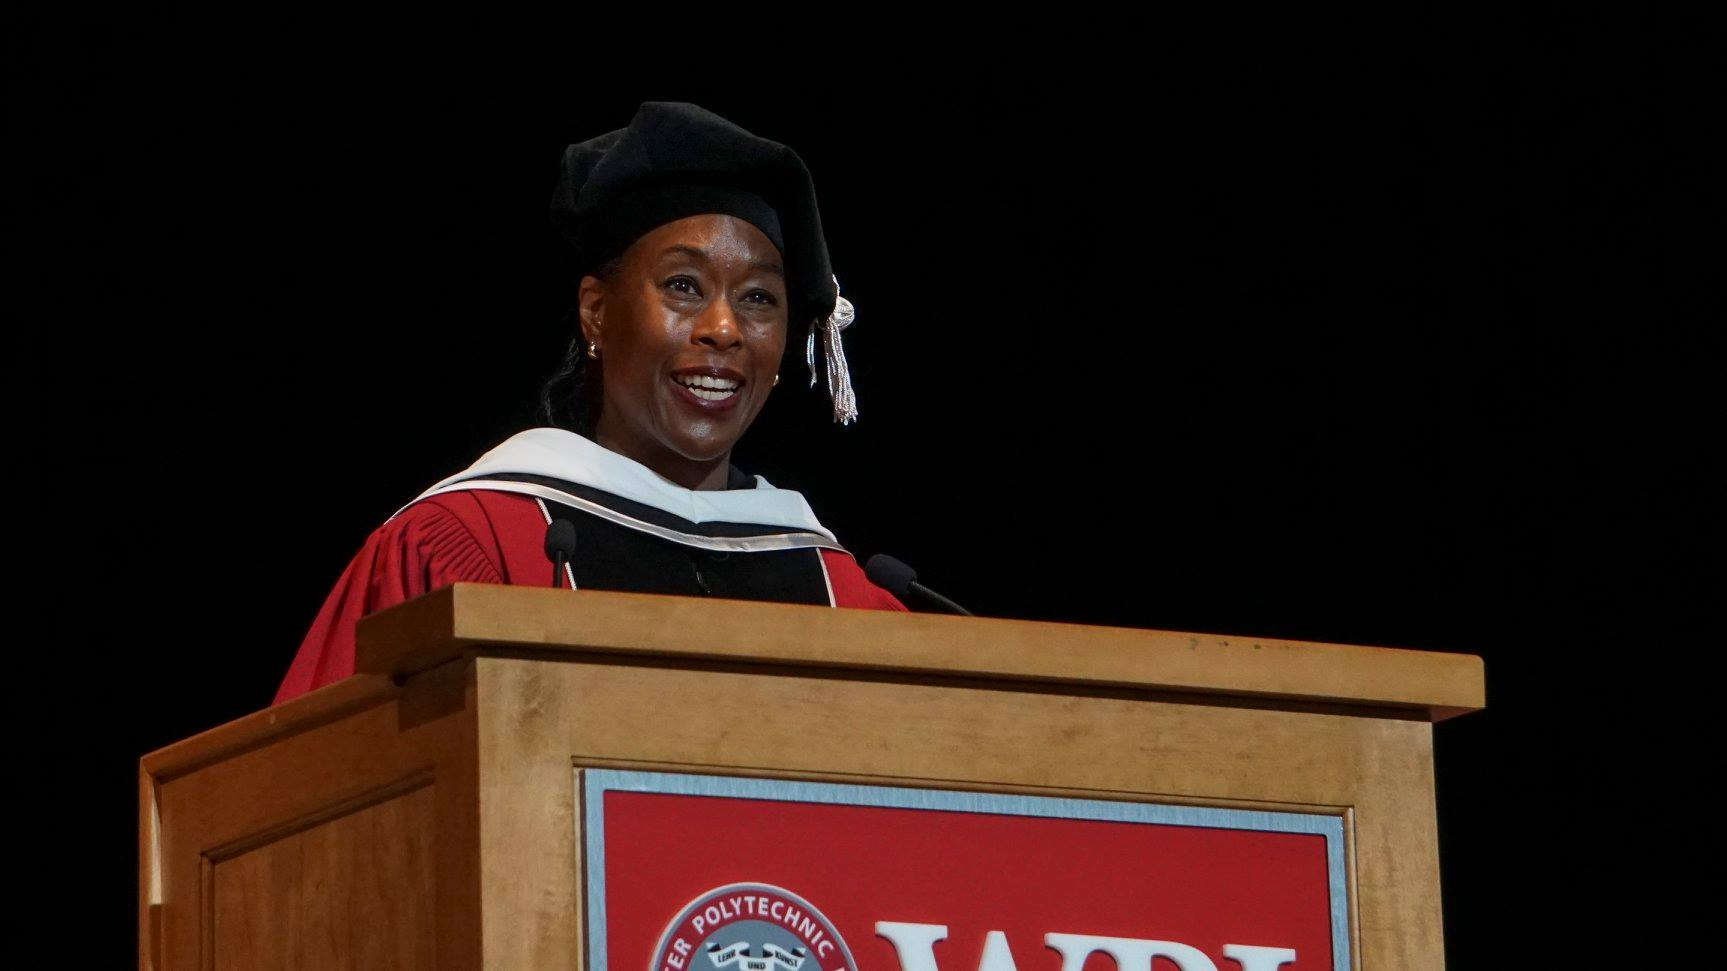 """Margot Lee Shetterly, author of the book """"Hidden Figures: The American Dream and the Untold Story of the Black Women Mathematicians Who Helped Win the Space Race,"""" speaks at Worcester Polytechnic Institute's 2018 commencement ceremony on Saturday, May 12."""